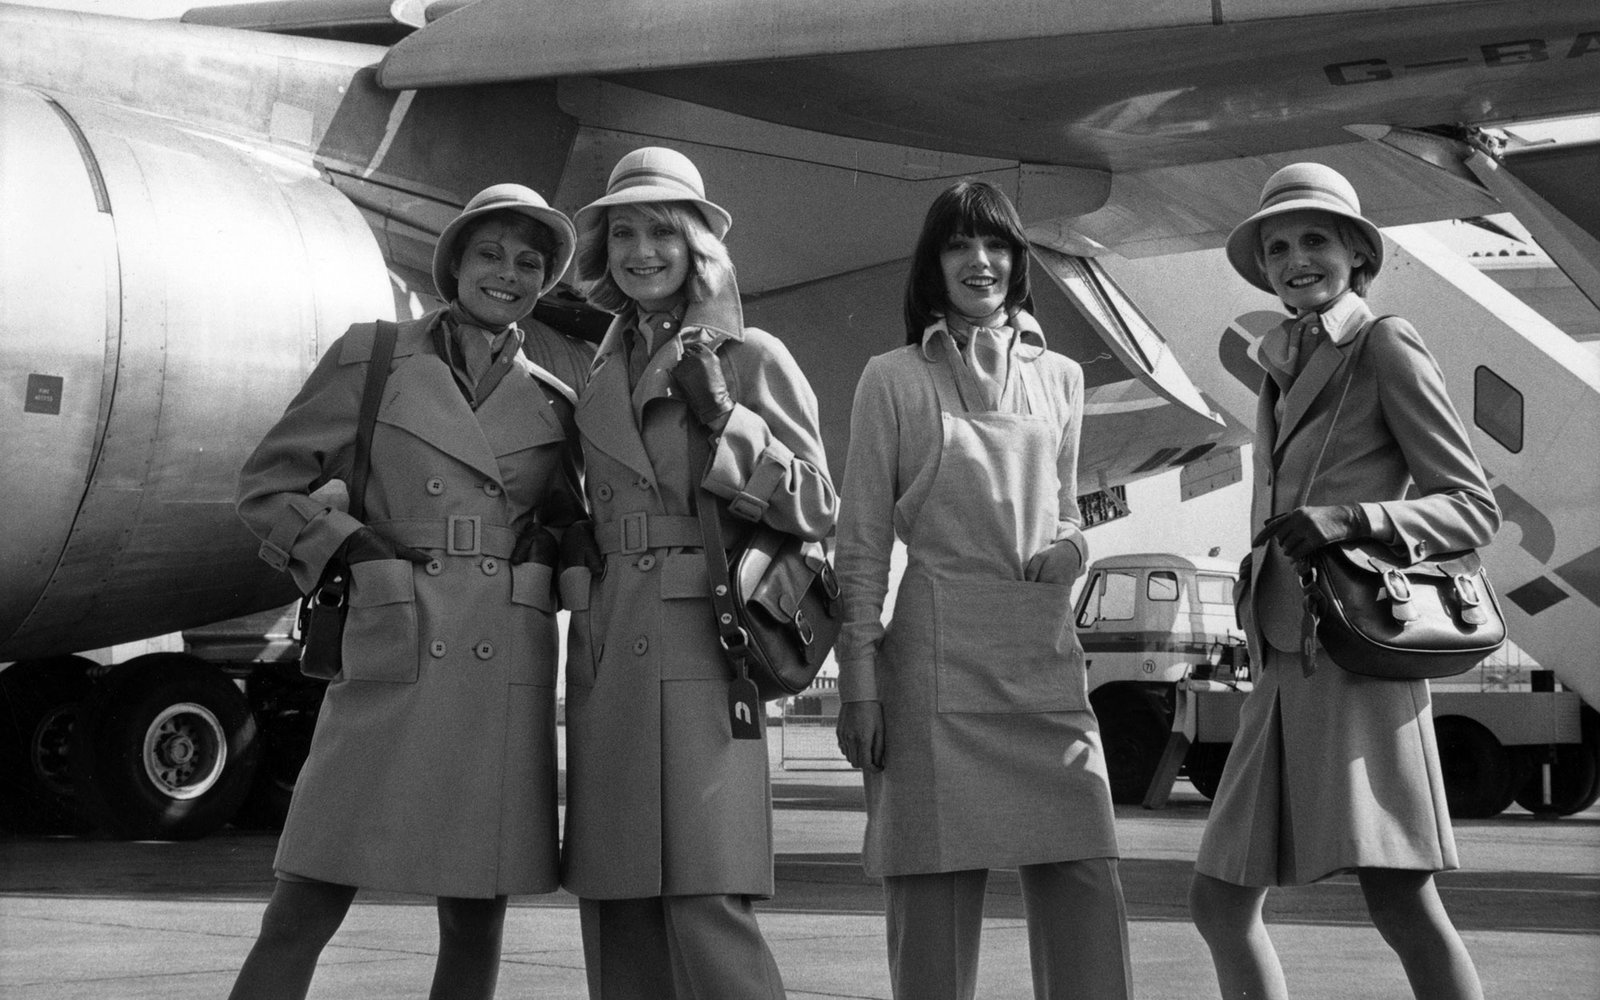 22nd March 1973:  A group of air hostesses model the new uniforms designed by Mary Quant for the stewardesses of Court Line Aviation. The fashion show takes place at Luton airport, in front of one of the airline's fleet of new Lockheed Tristar passenger a